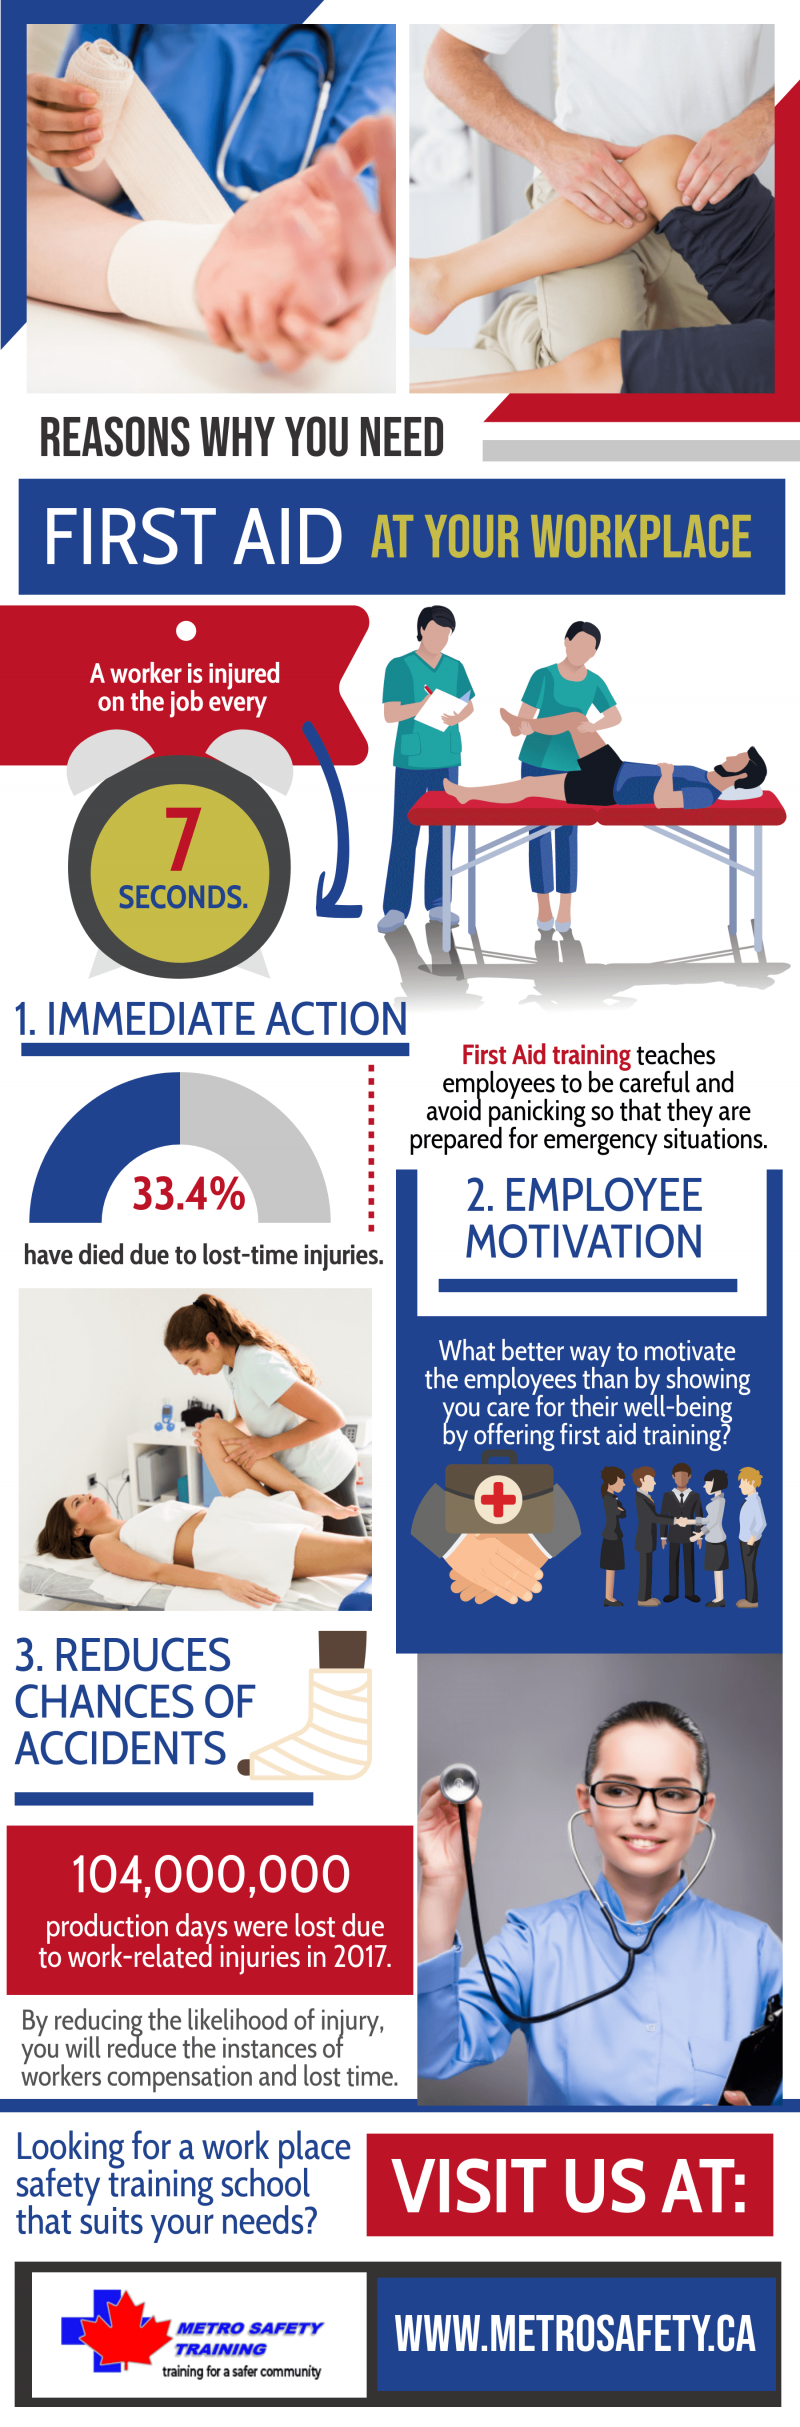 Reason Why You Need First Aid At Your Workplace